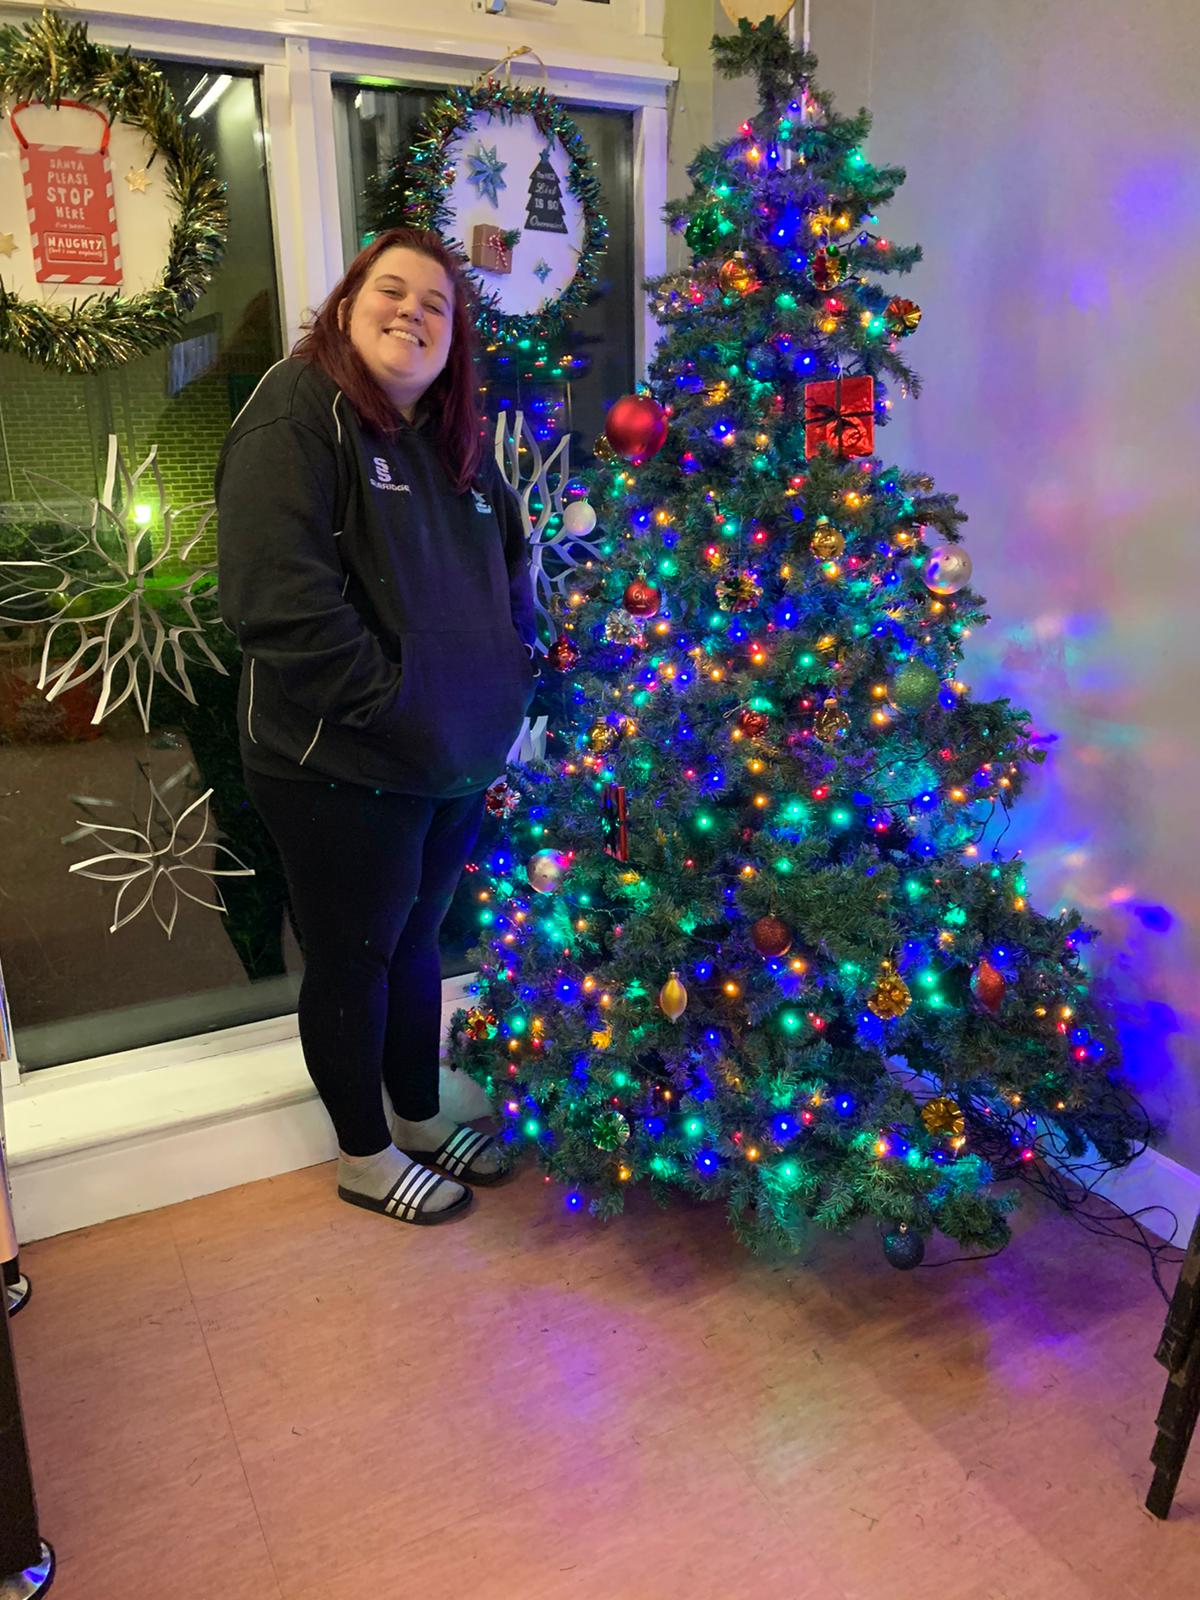 woman standing by a Christmas tree